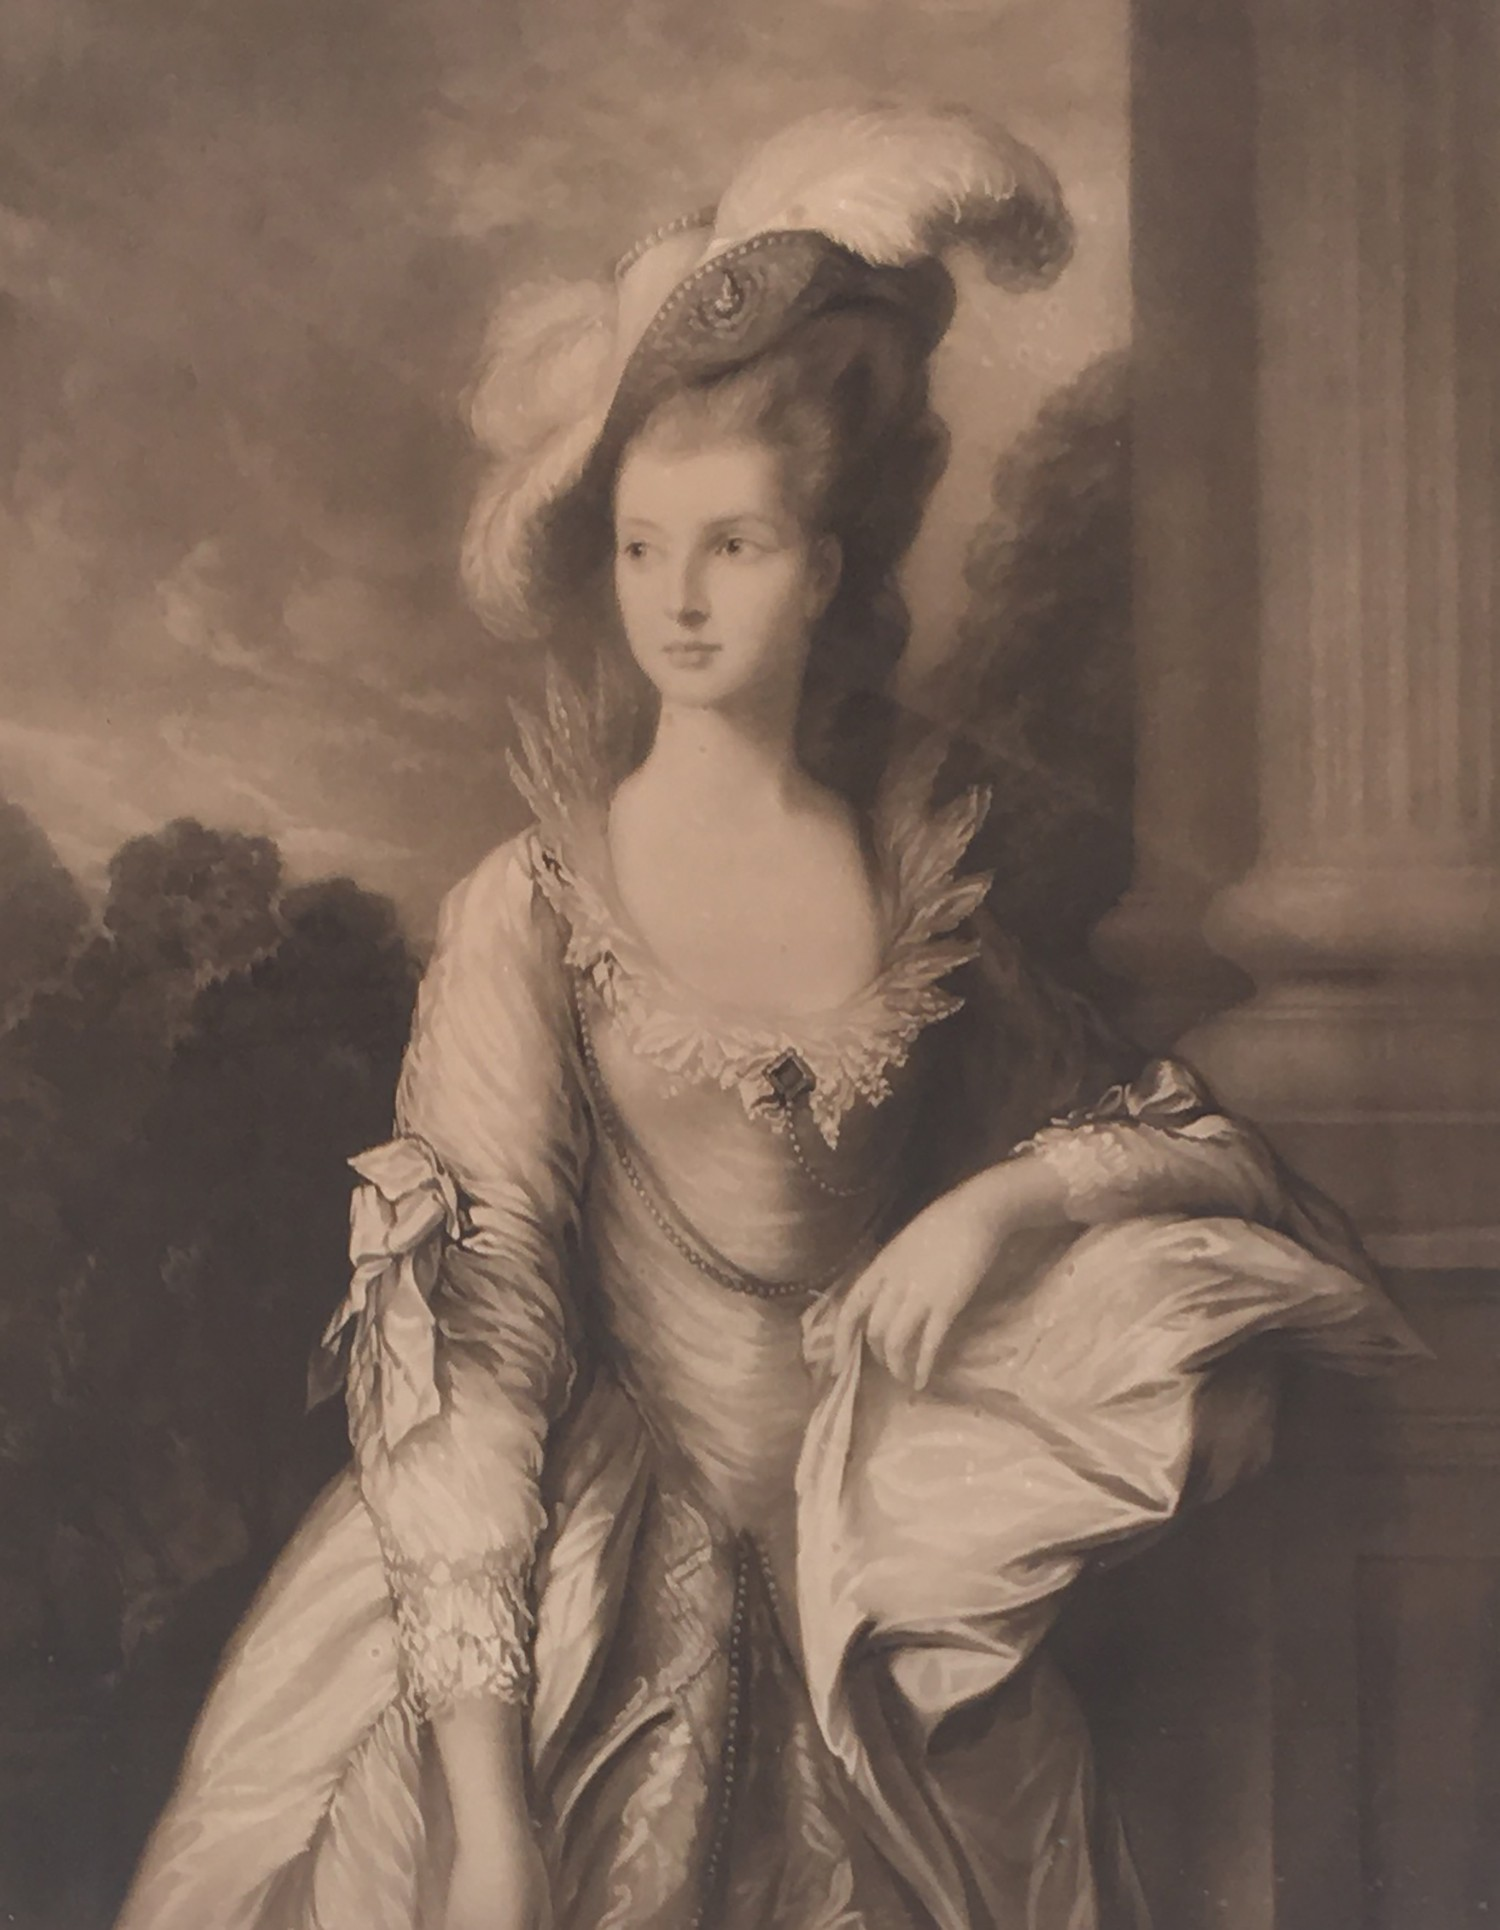 After Thomas Gainsborough, Portrait of the Hon. Mrs Thomas Graham, head and shoulders, engraved by